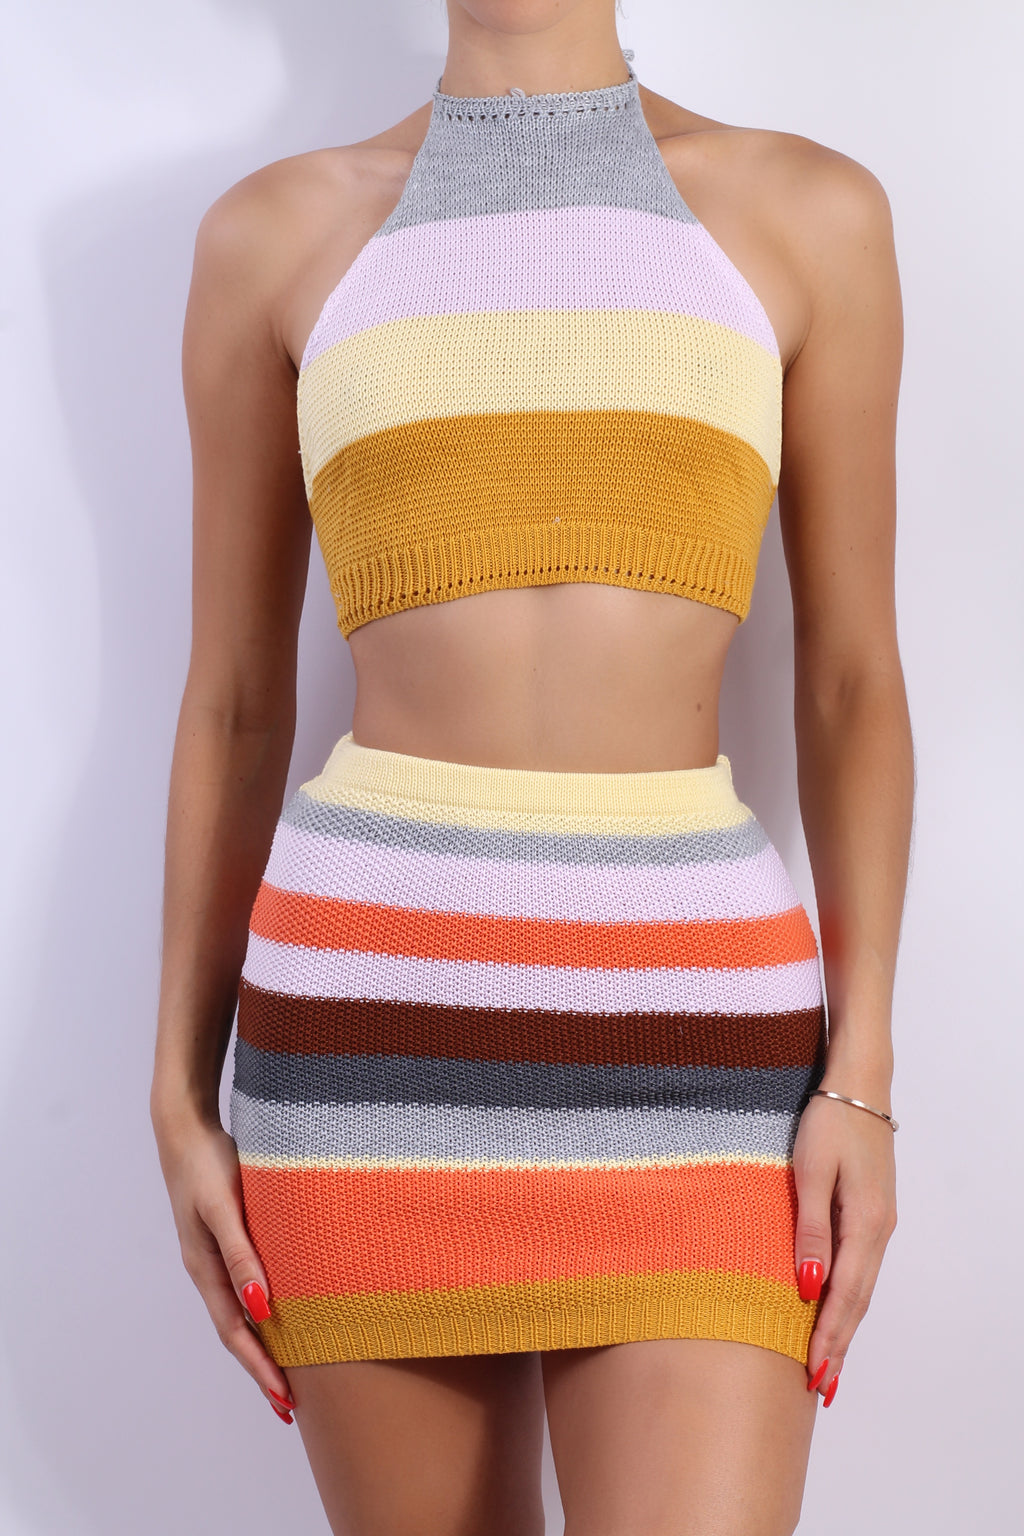 The Dreamsicle Two Piece